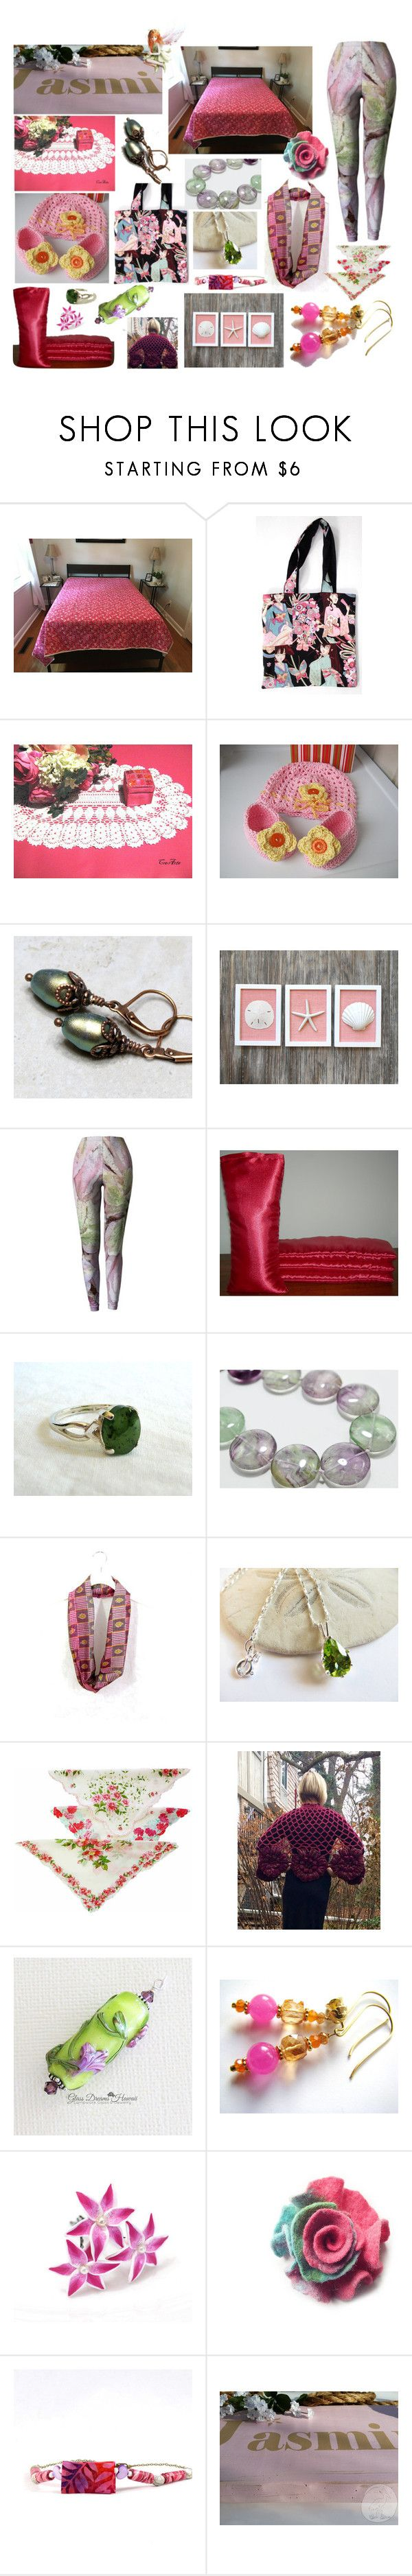 July Gift Ideas by belladonnasjoy on Polyvore featuring Cadeau, modern, rustic and vintage